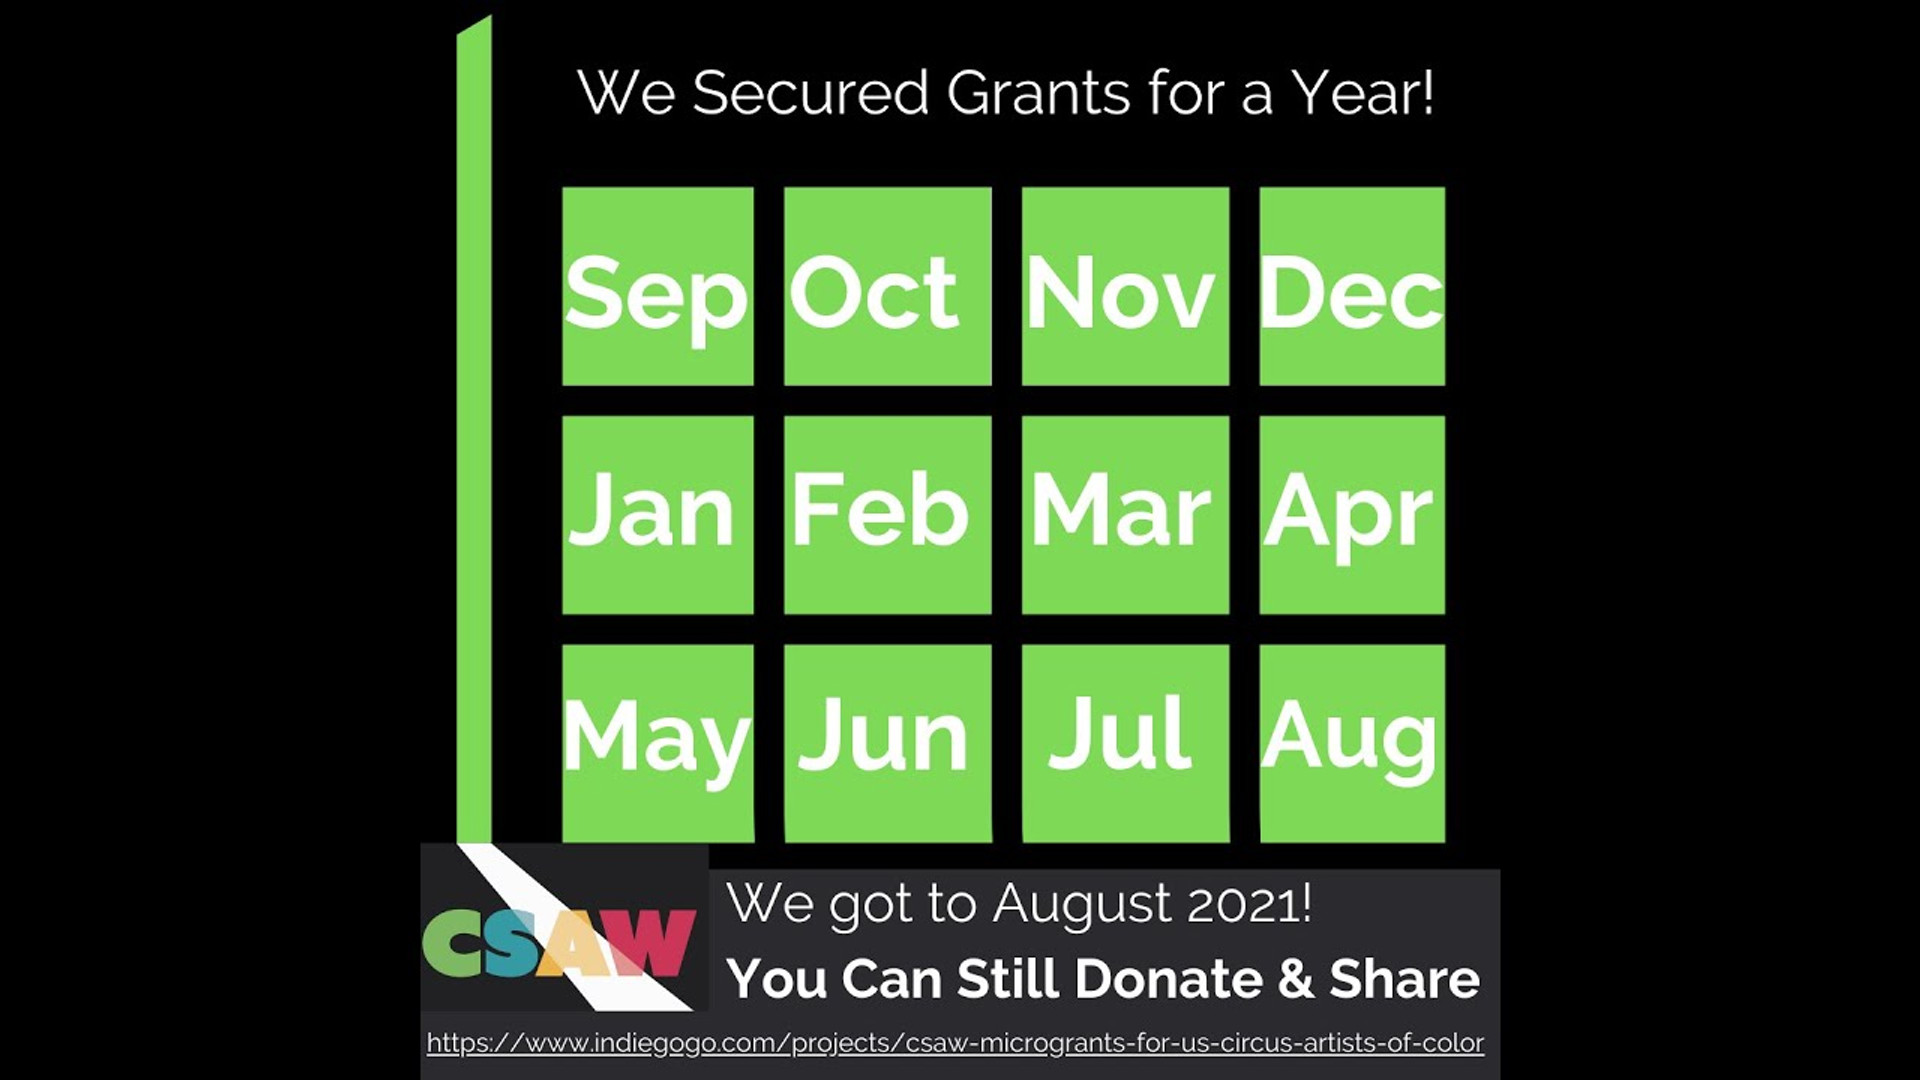 CSAW Microgrants Fundraiser - We Met Our Goal!